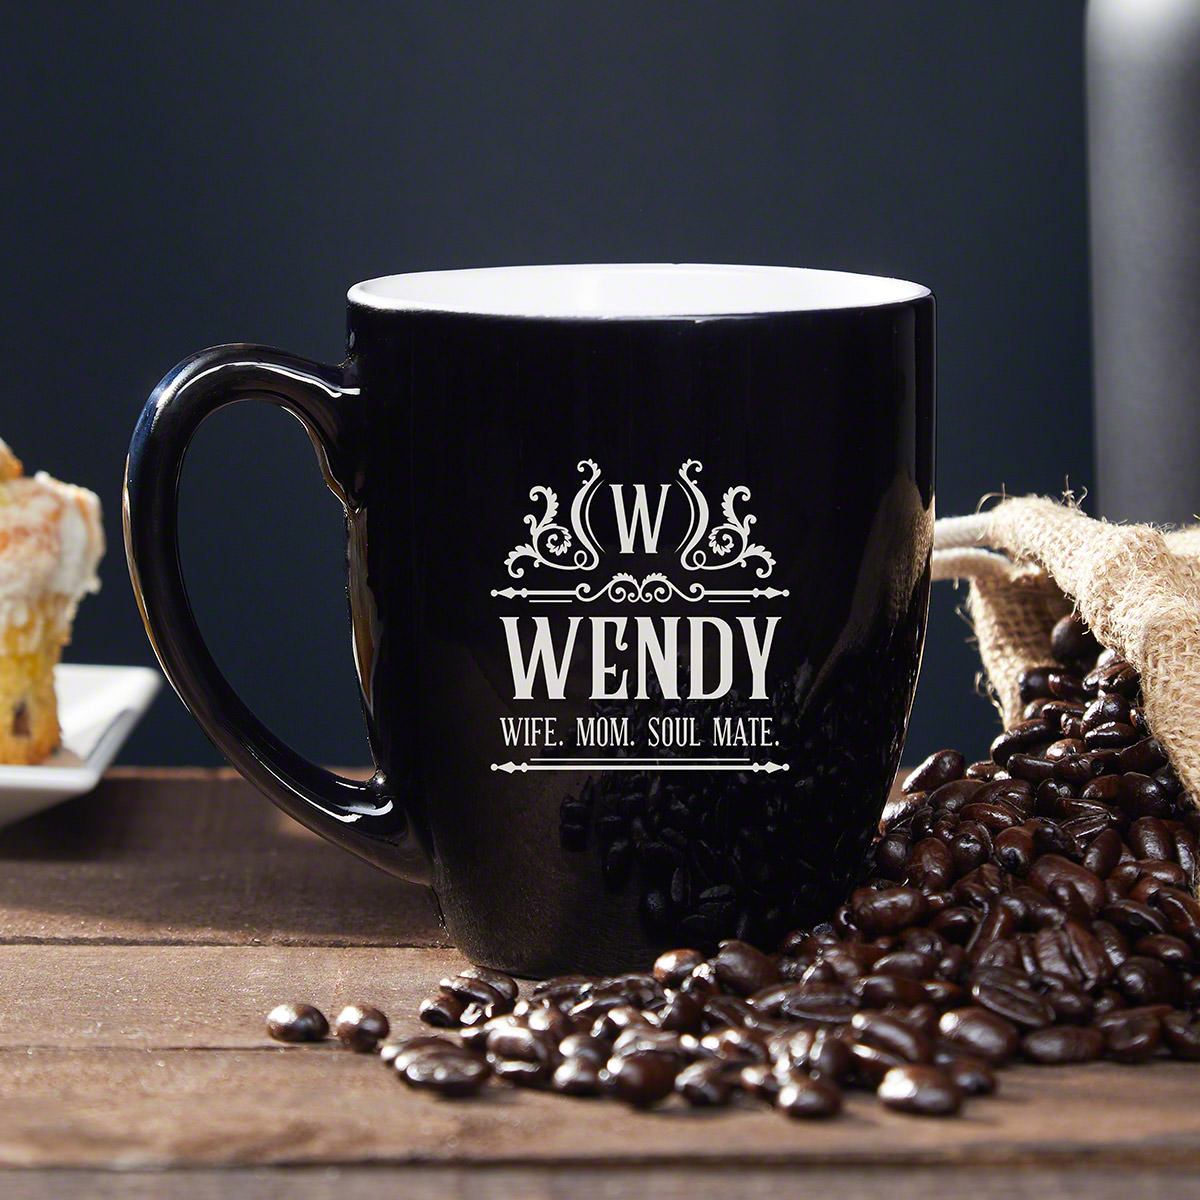 Everyone loves having their own personalized coffee mug! They are always the perfect gift for coffee-loving wives or partners! This mug is a great gift for her birthday or for Mother's Day. Make this your wife's next special coffee mug with by adding #mug